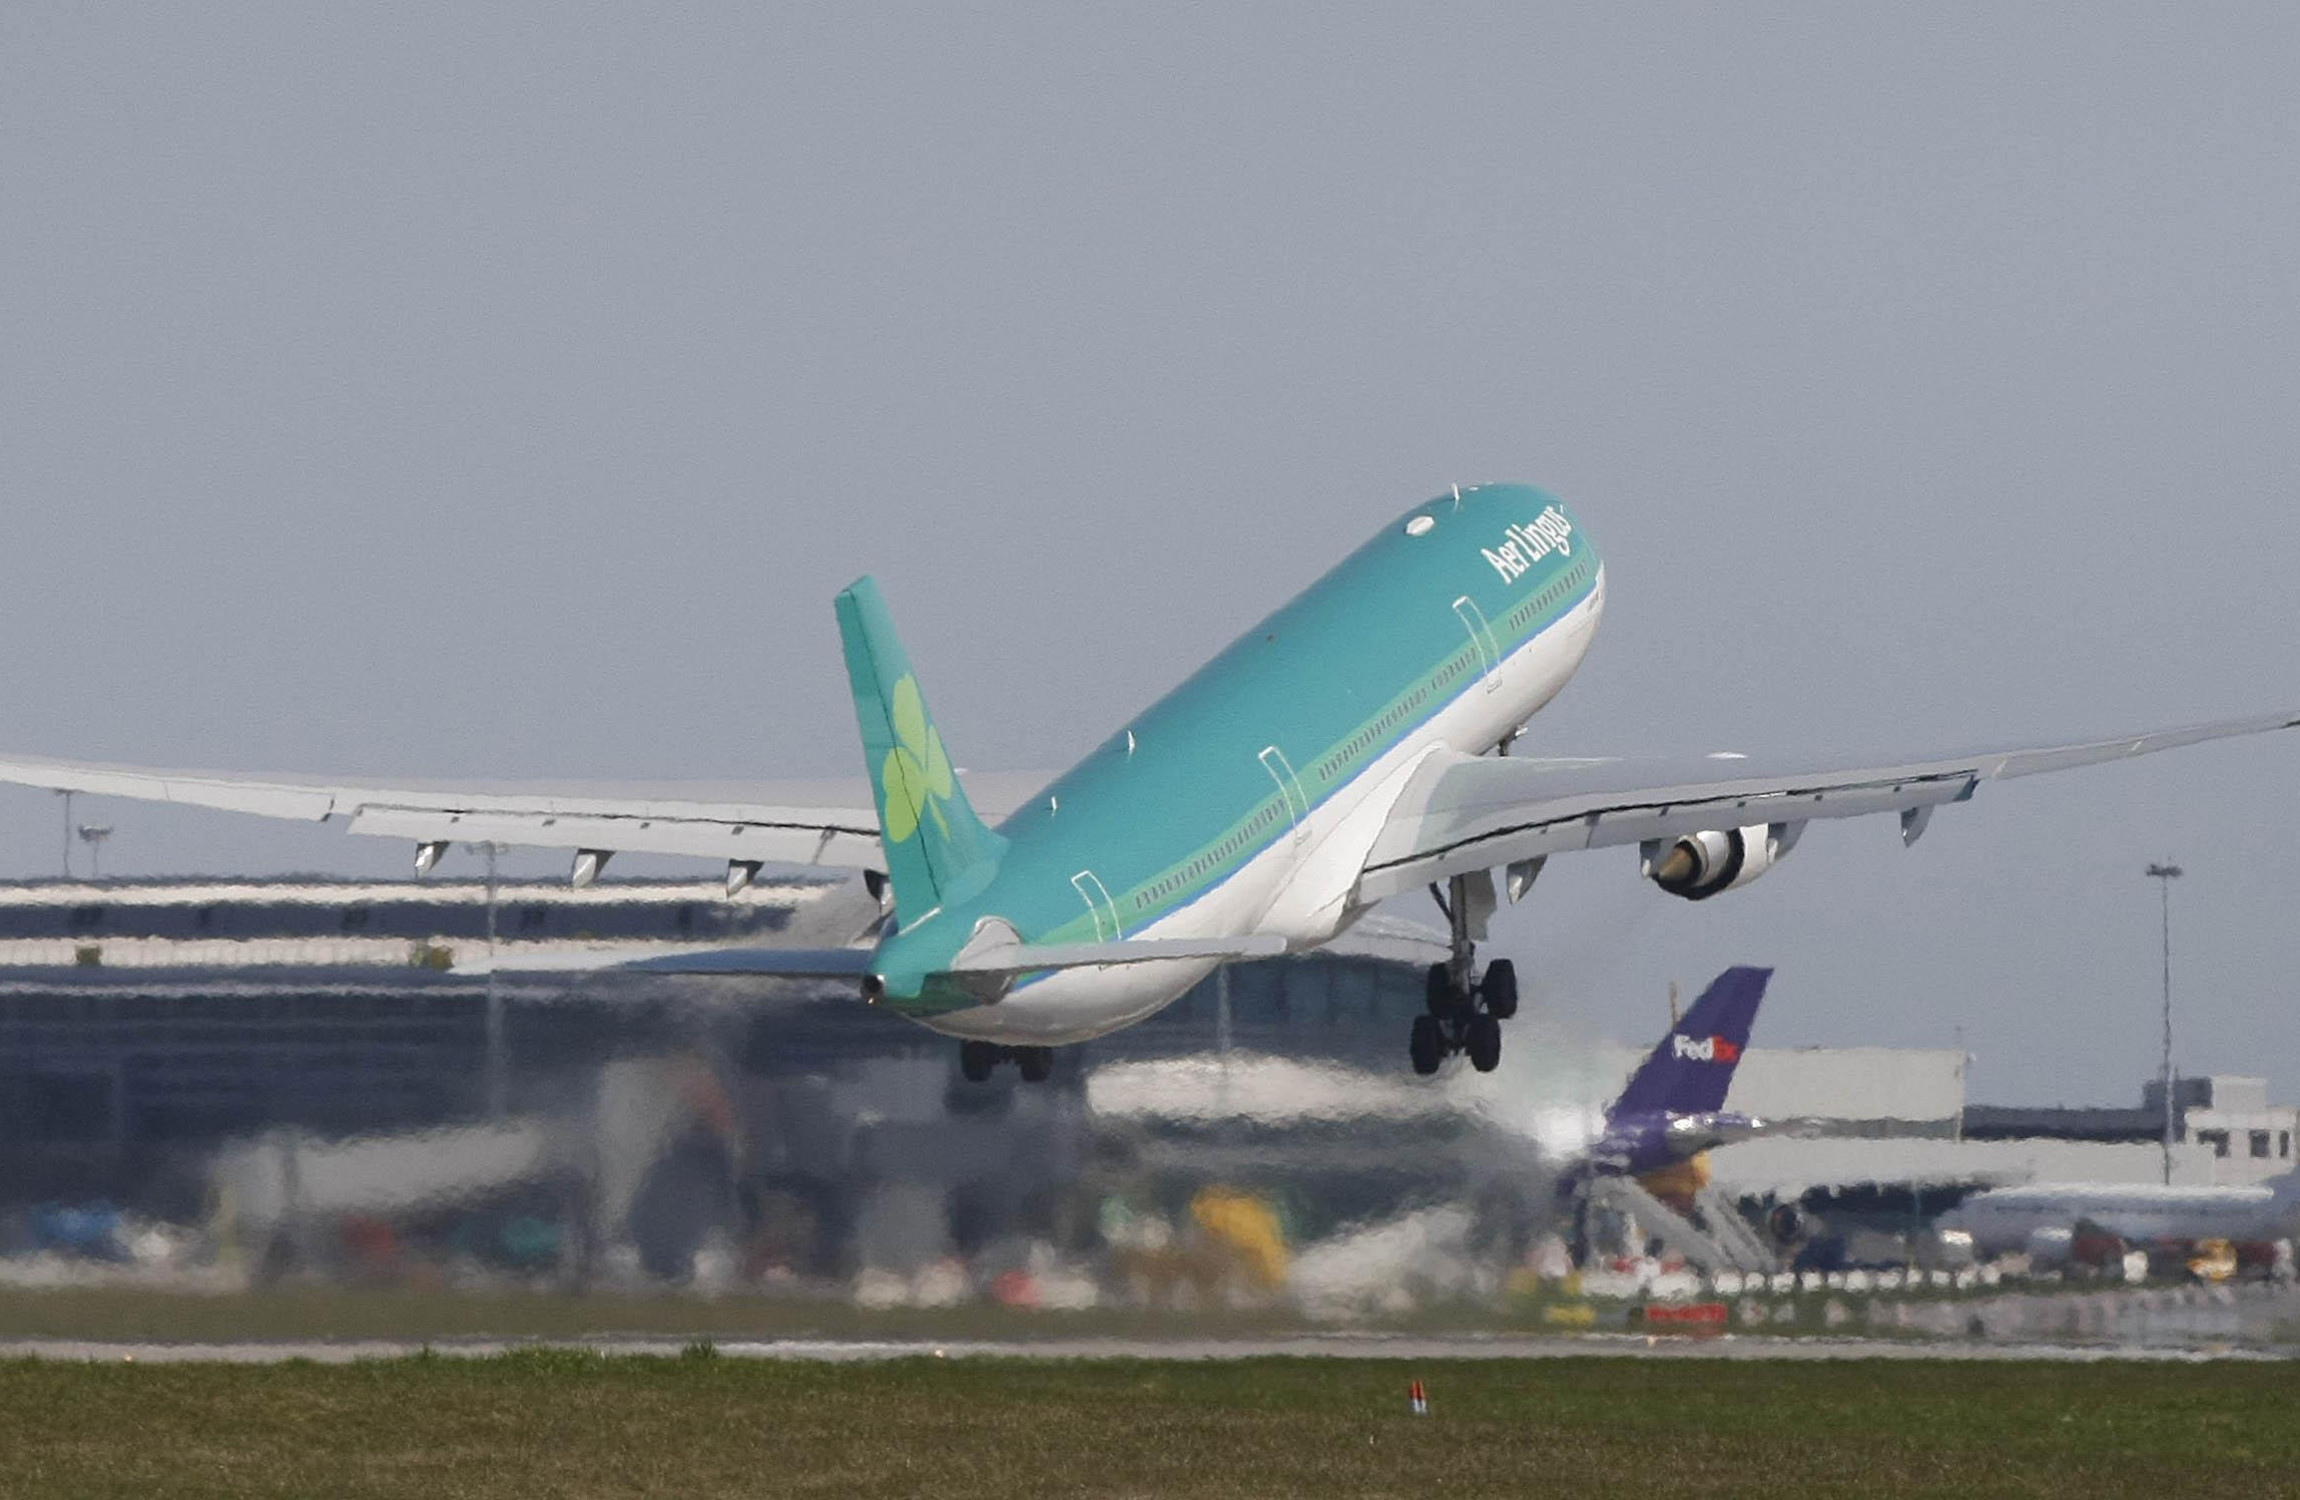 Aer Lingus plans 900 new jobs by 2020